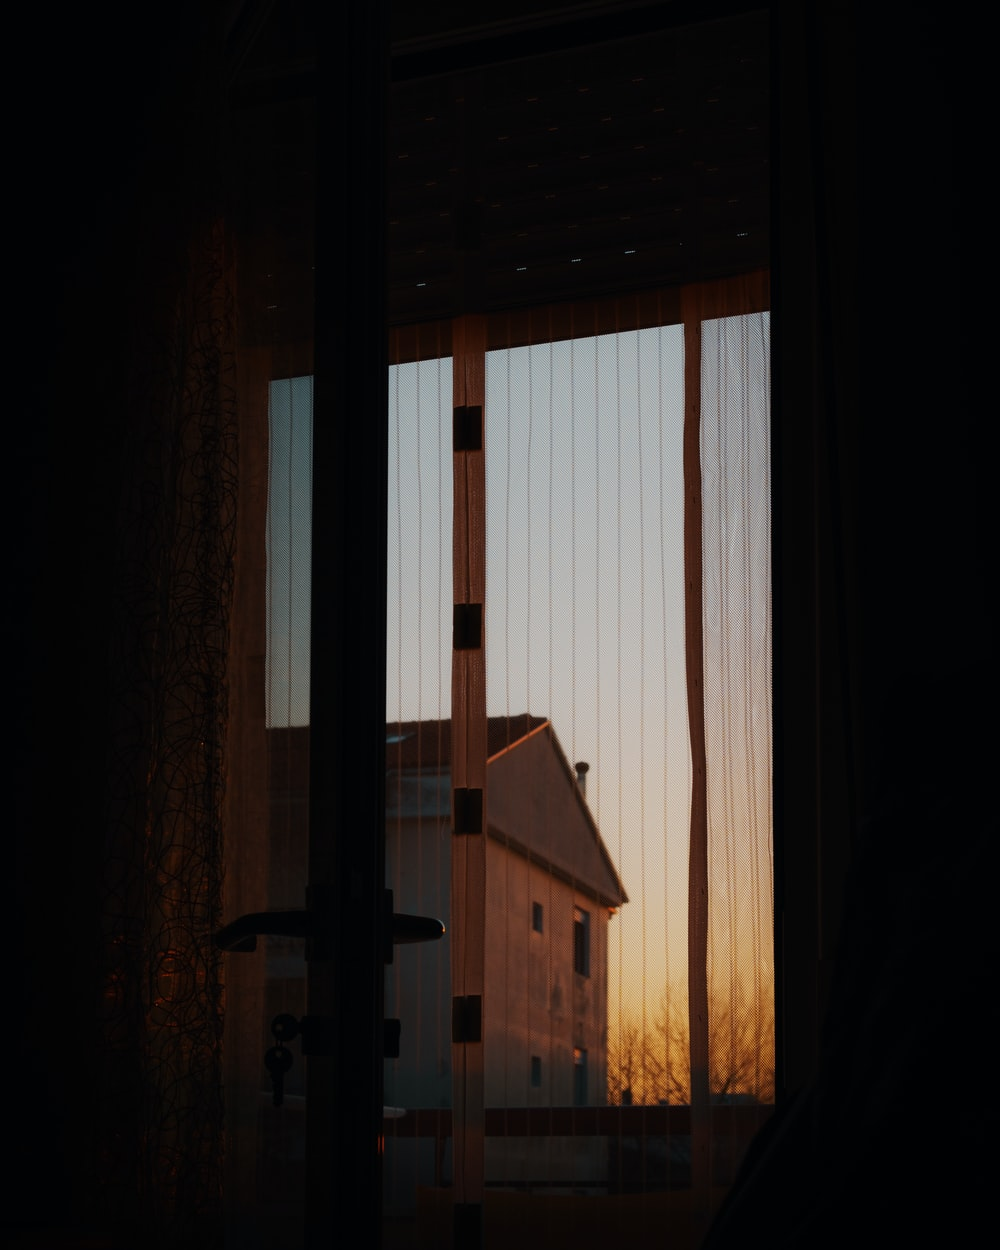 brown wooden house in front of brown wooden window